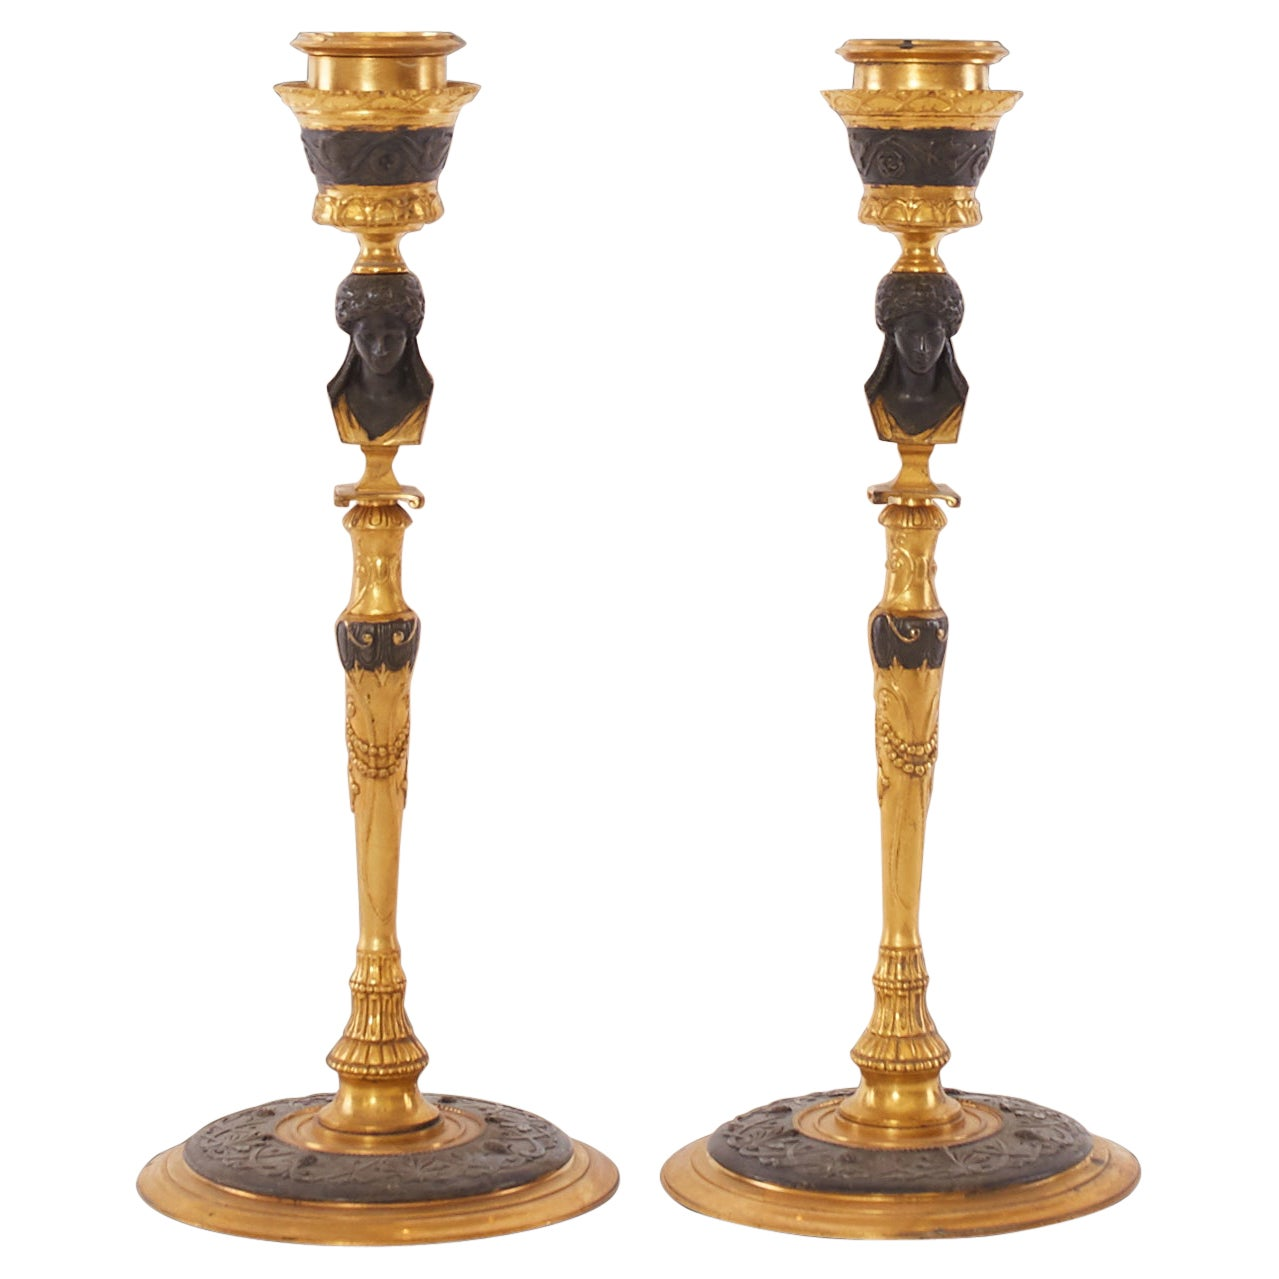 Directoire Candle Holders